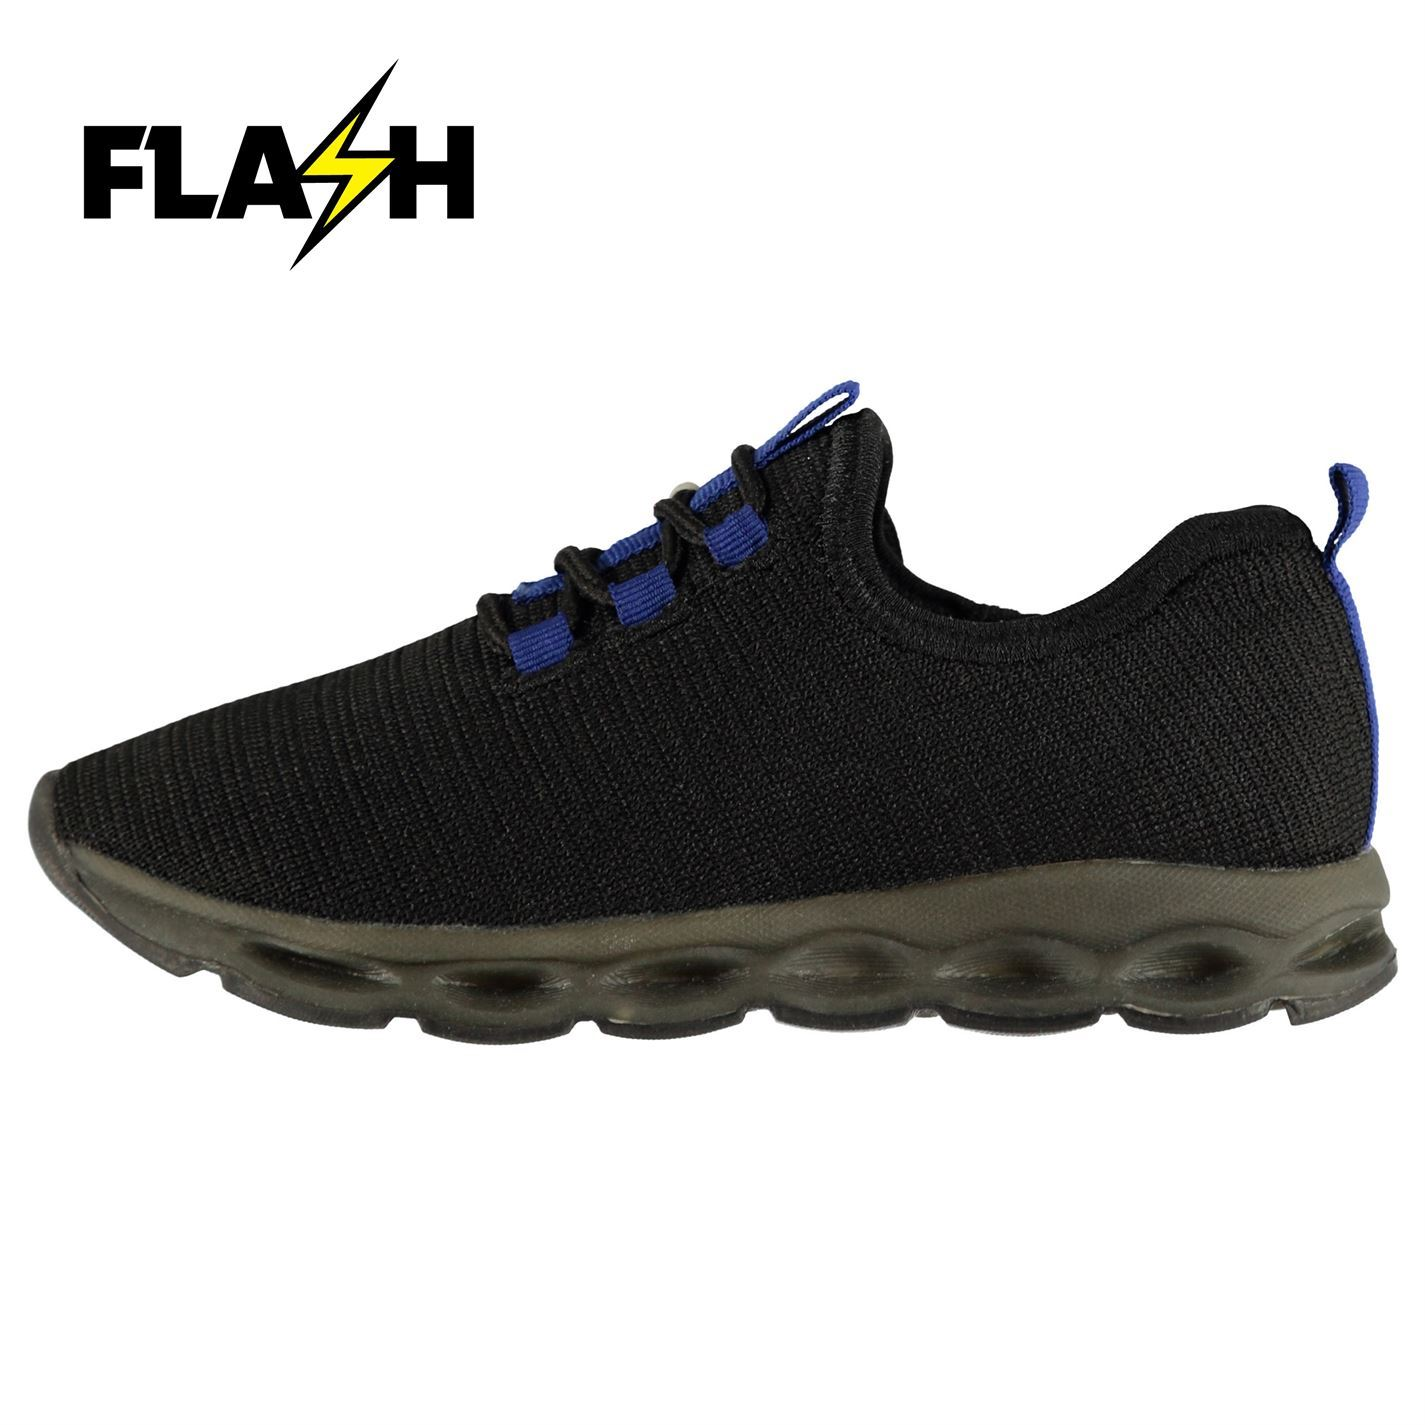 Fabric Childrens Flyer Runners Boys Trainers Laces Fastened Shoes Footwear